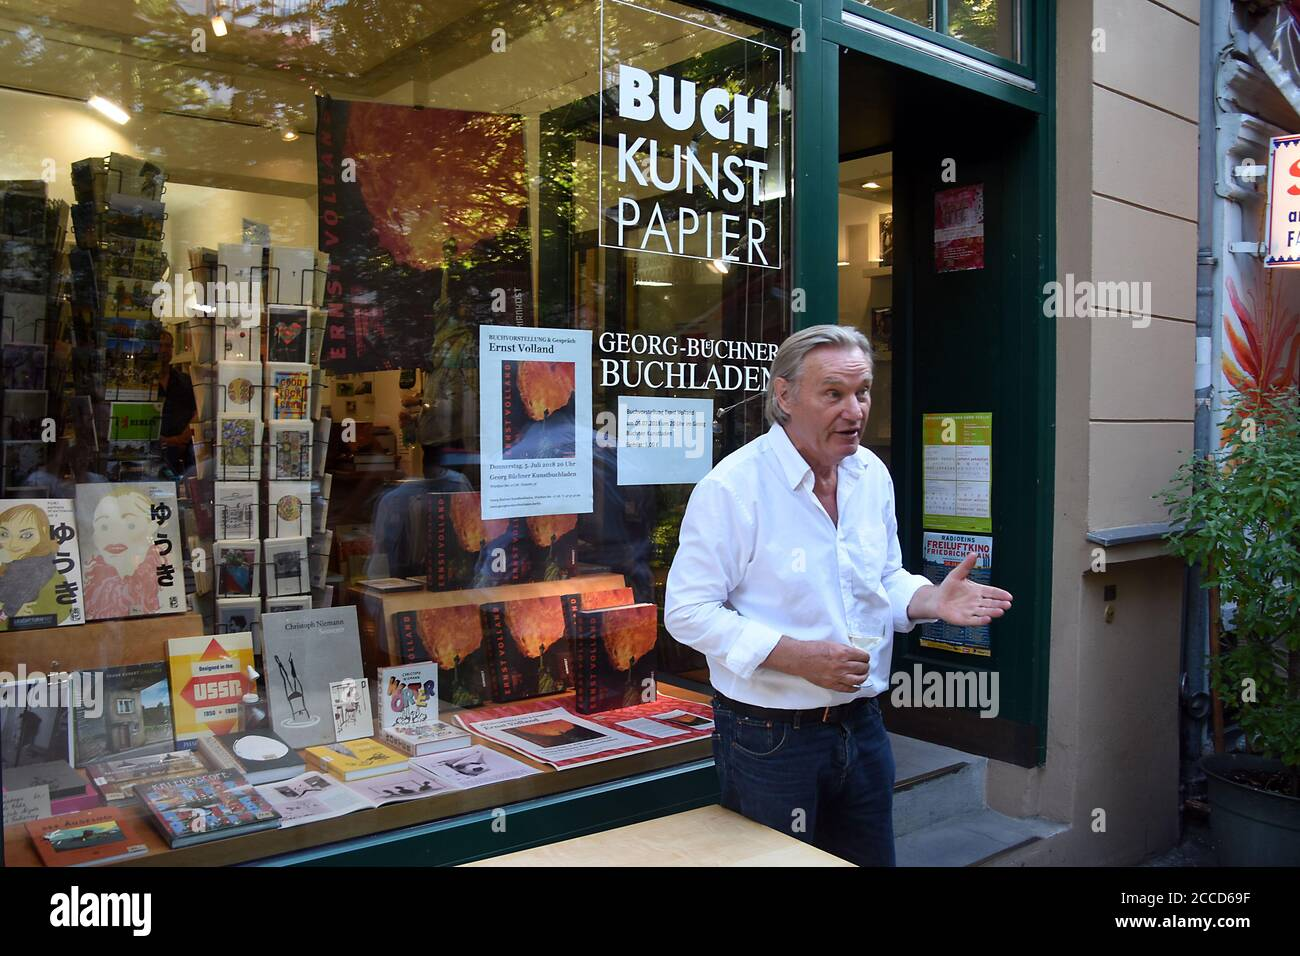 Germany. 05th July, 2018. Book presentation and discussion with Ernst Volland (German artist, photographer, caricaturist, gallery owner, curator) in the Georg Büchner Kunstbuchladen, Wörther Straße 17/18, Prenzlauer Berg district in the Berlin-Pankow district, taken on 05.07.2019. Credit: Manfred Krause Credit: Manfred Krause//-/dpa/Alamy Live News Stock Photo